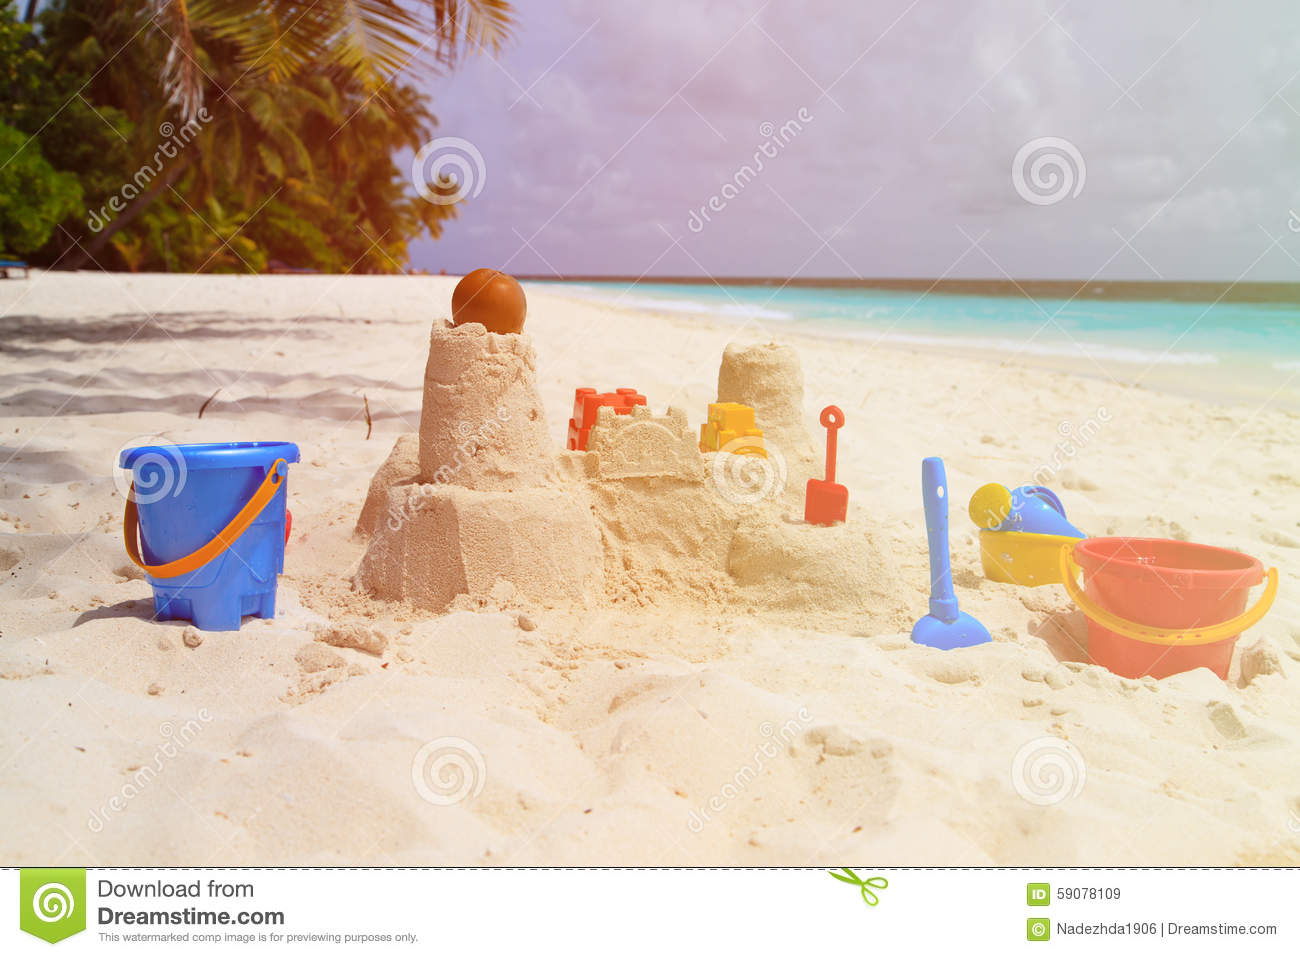 Beach Sand Toys For Kids : Sand castle on beach and kids toys stock image of